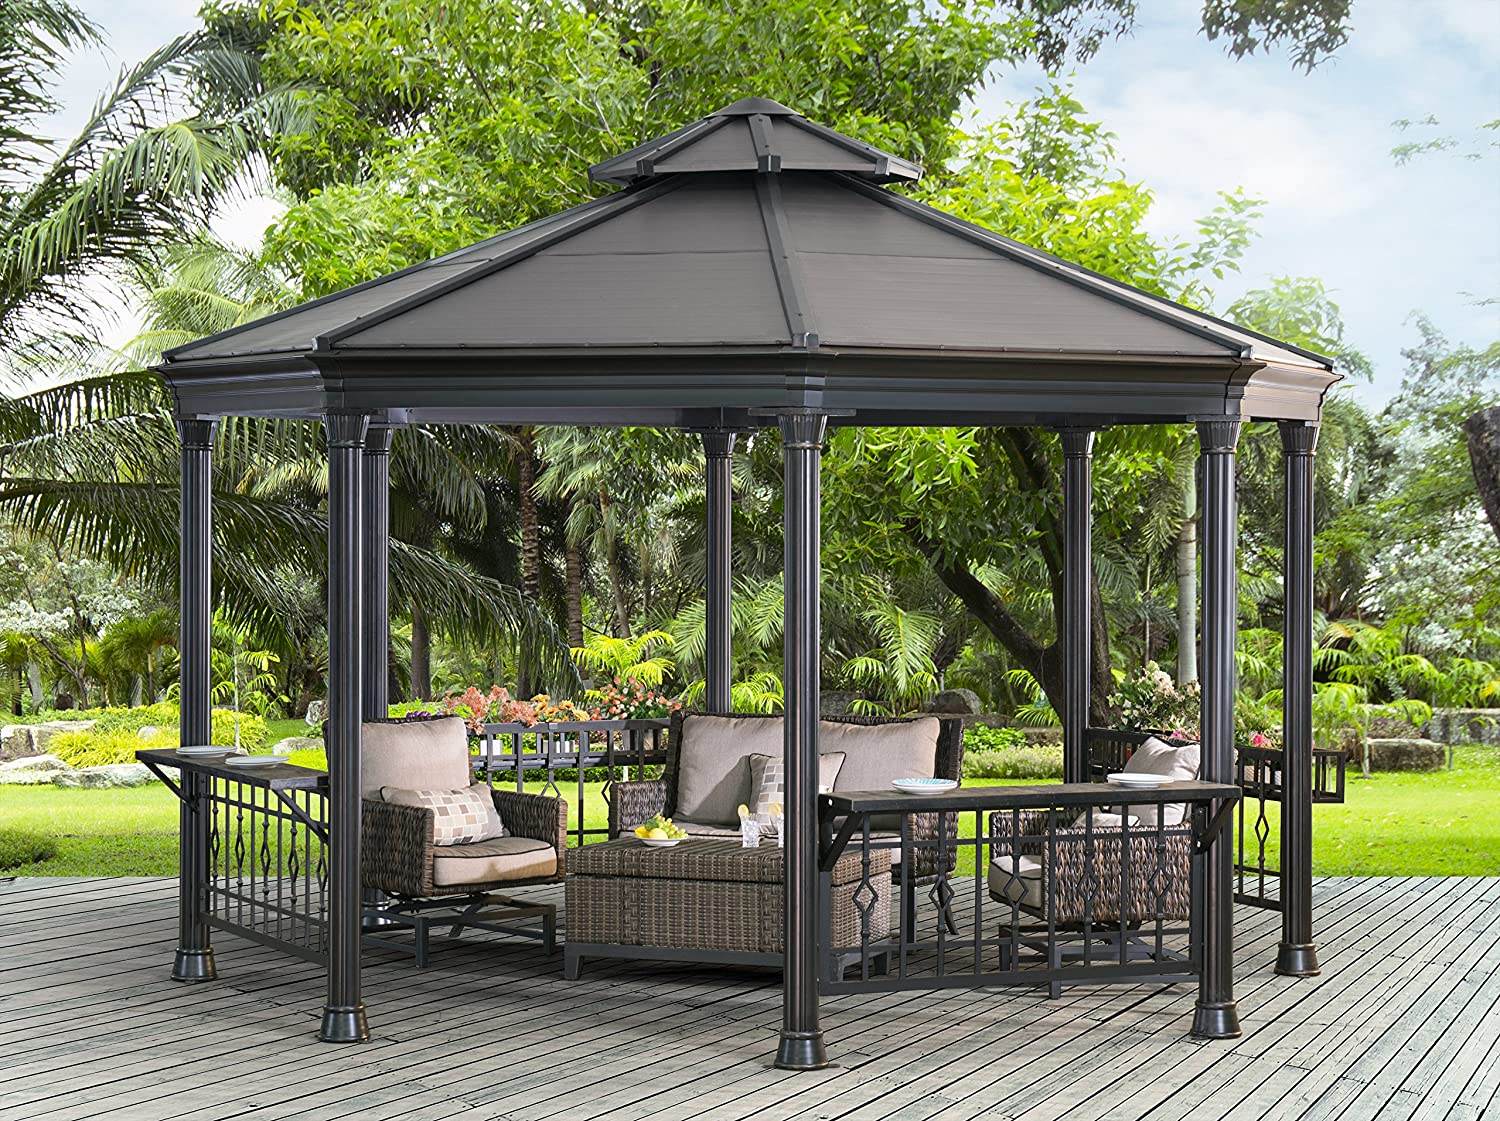 Sunjoy 14 x 13 ft. Parsons octogonal Gazebo: Amazon.es: Jardín